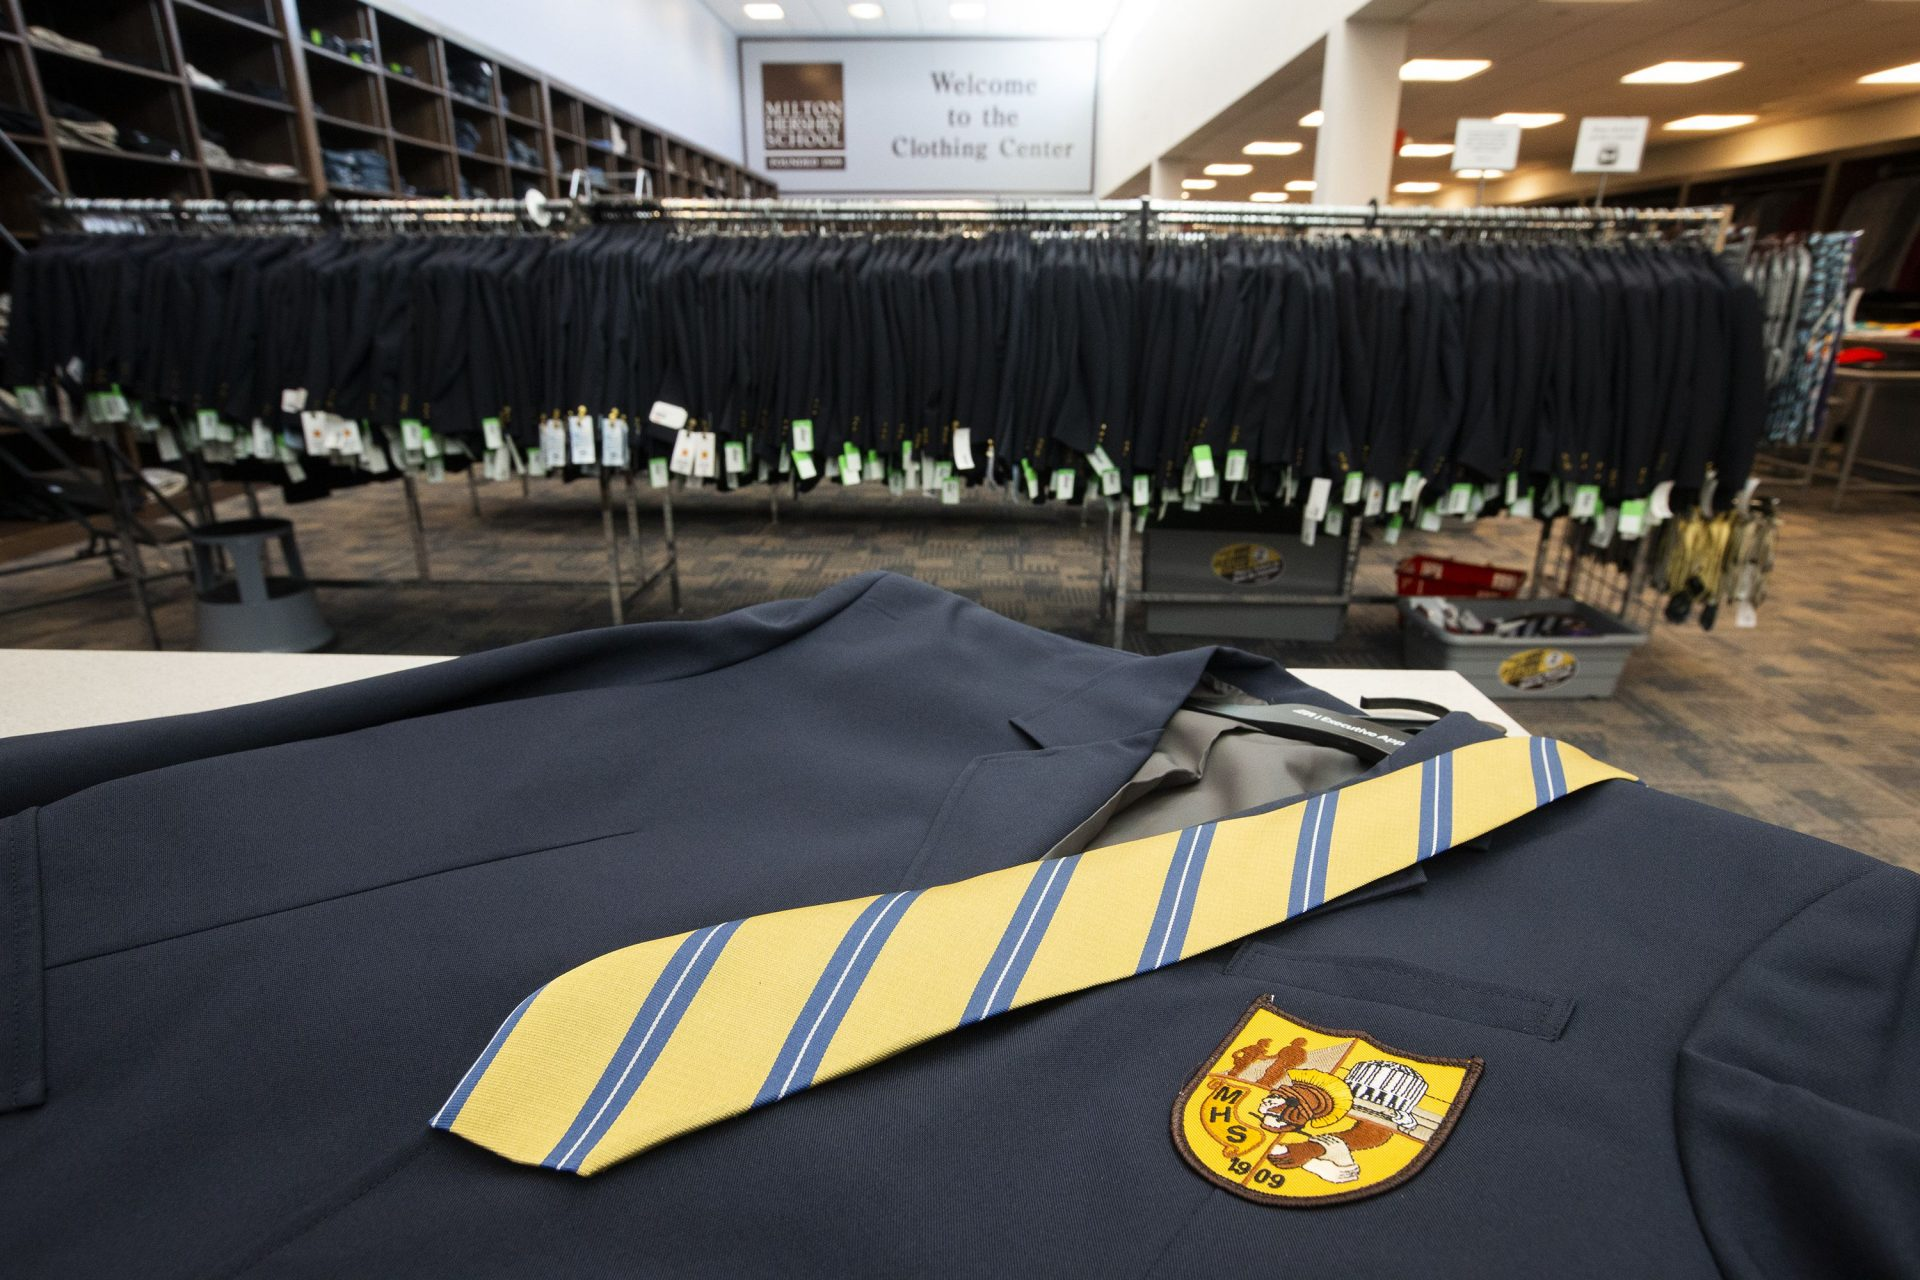 A tie and blazer at the school's supply center. Students must wear uniforms during the school day.